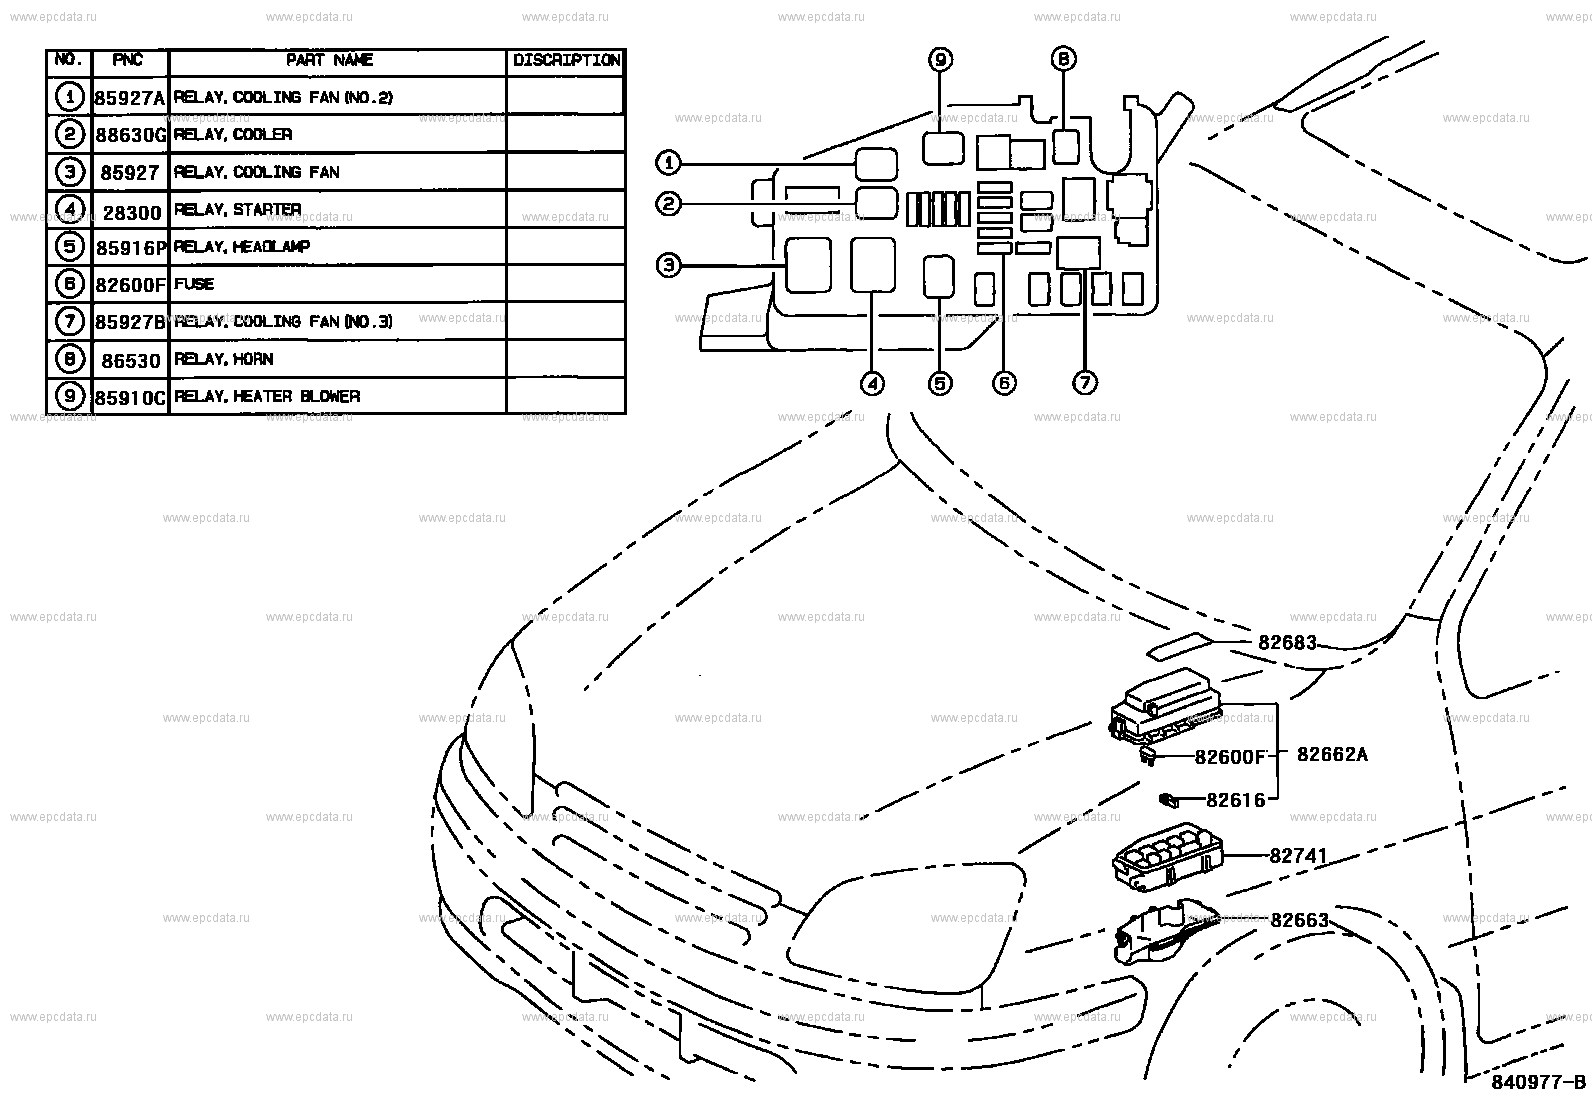 Switch & relay & computer for Toyota Raum EXZ10 - Genuine parts on toyota shop manual, toyota truck diagrams, toyota ignition diagram, toyota headlight adjustment, toyota cooling system diagram, toyota shock absorber replacement, toyota parts diagrams, toyota electrical diagrams, toyota ecu reset, toyota cylinder head, toyota wiring manual, toyota schematic diagrams, toyota flasher relay, toyota headlight wiring, toyota alternator wiring, toyota wiring color codes, toyota diagrams online, toyota maintenance schedule, toyota 22re vacuum line diagram, toyota wiring harness,